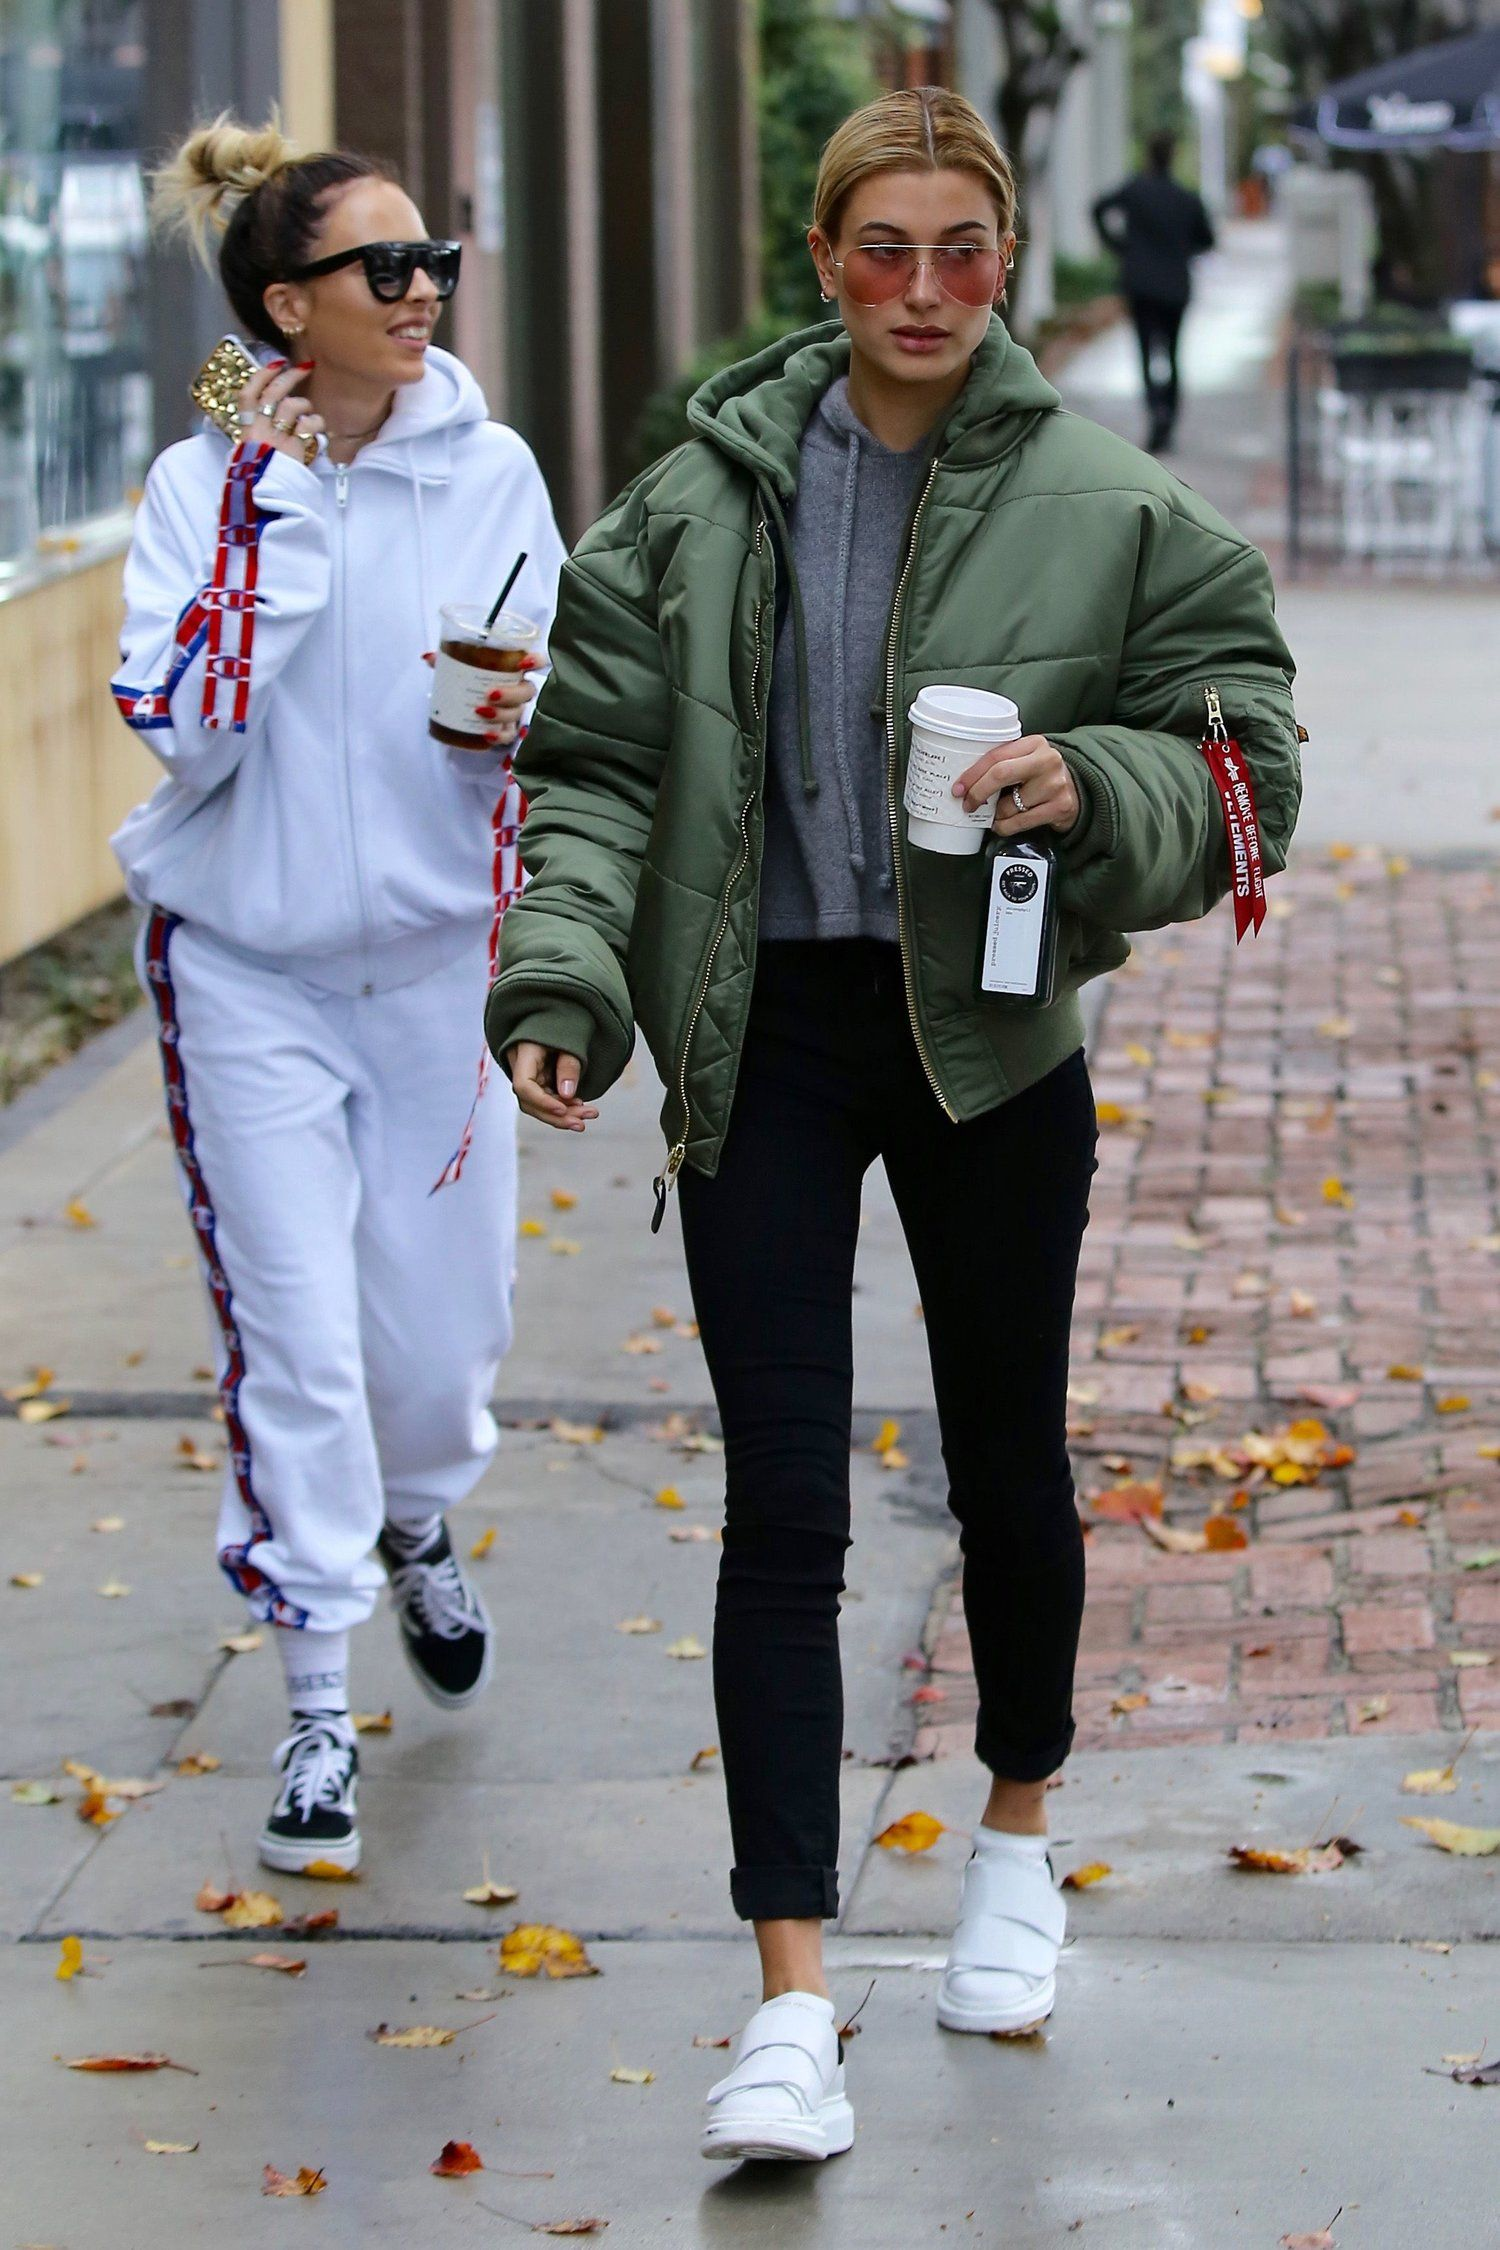 These Women S Bomber Jackets Are Celebrity Approved Bomber Jacket Women Jacket Outfits Hailey Baldwin Style [ 2250 x 1500 Pixel ]